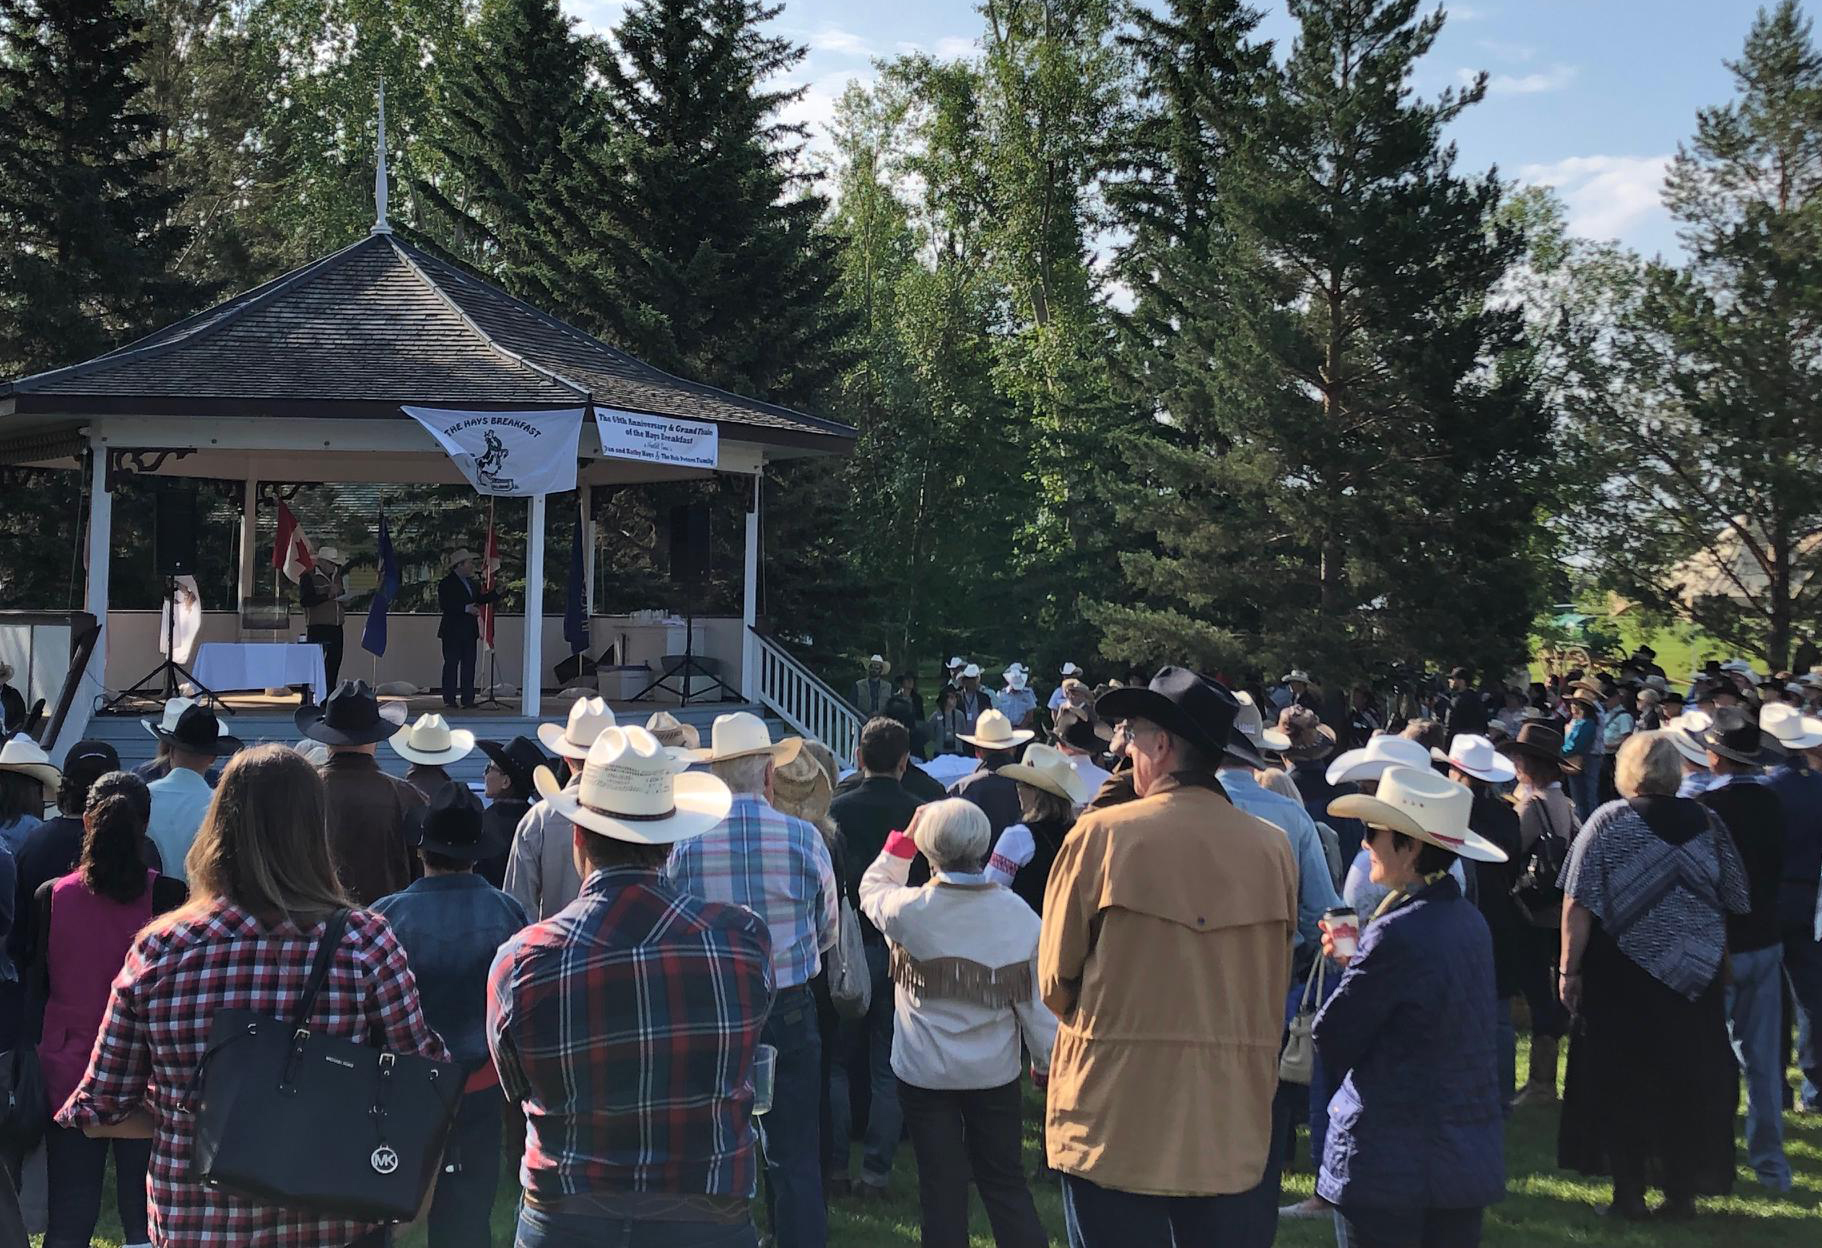 Sunday July 7 was the 69th annual Hays Breakfast, but unfortunately, the last one as the family has decided to end this Stampede tradition (although rumour has it that some folks intend to find a way to continue).